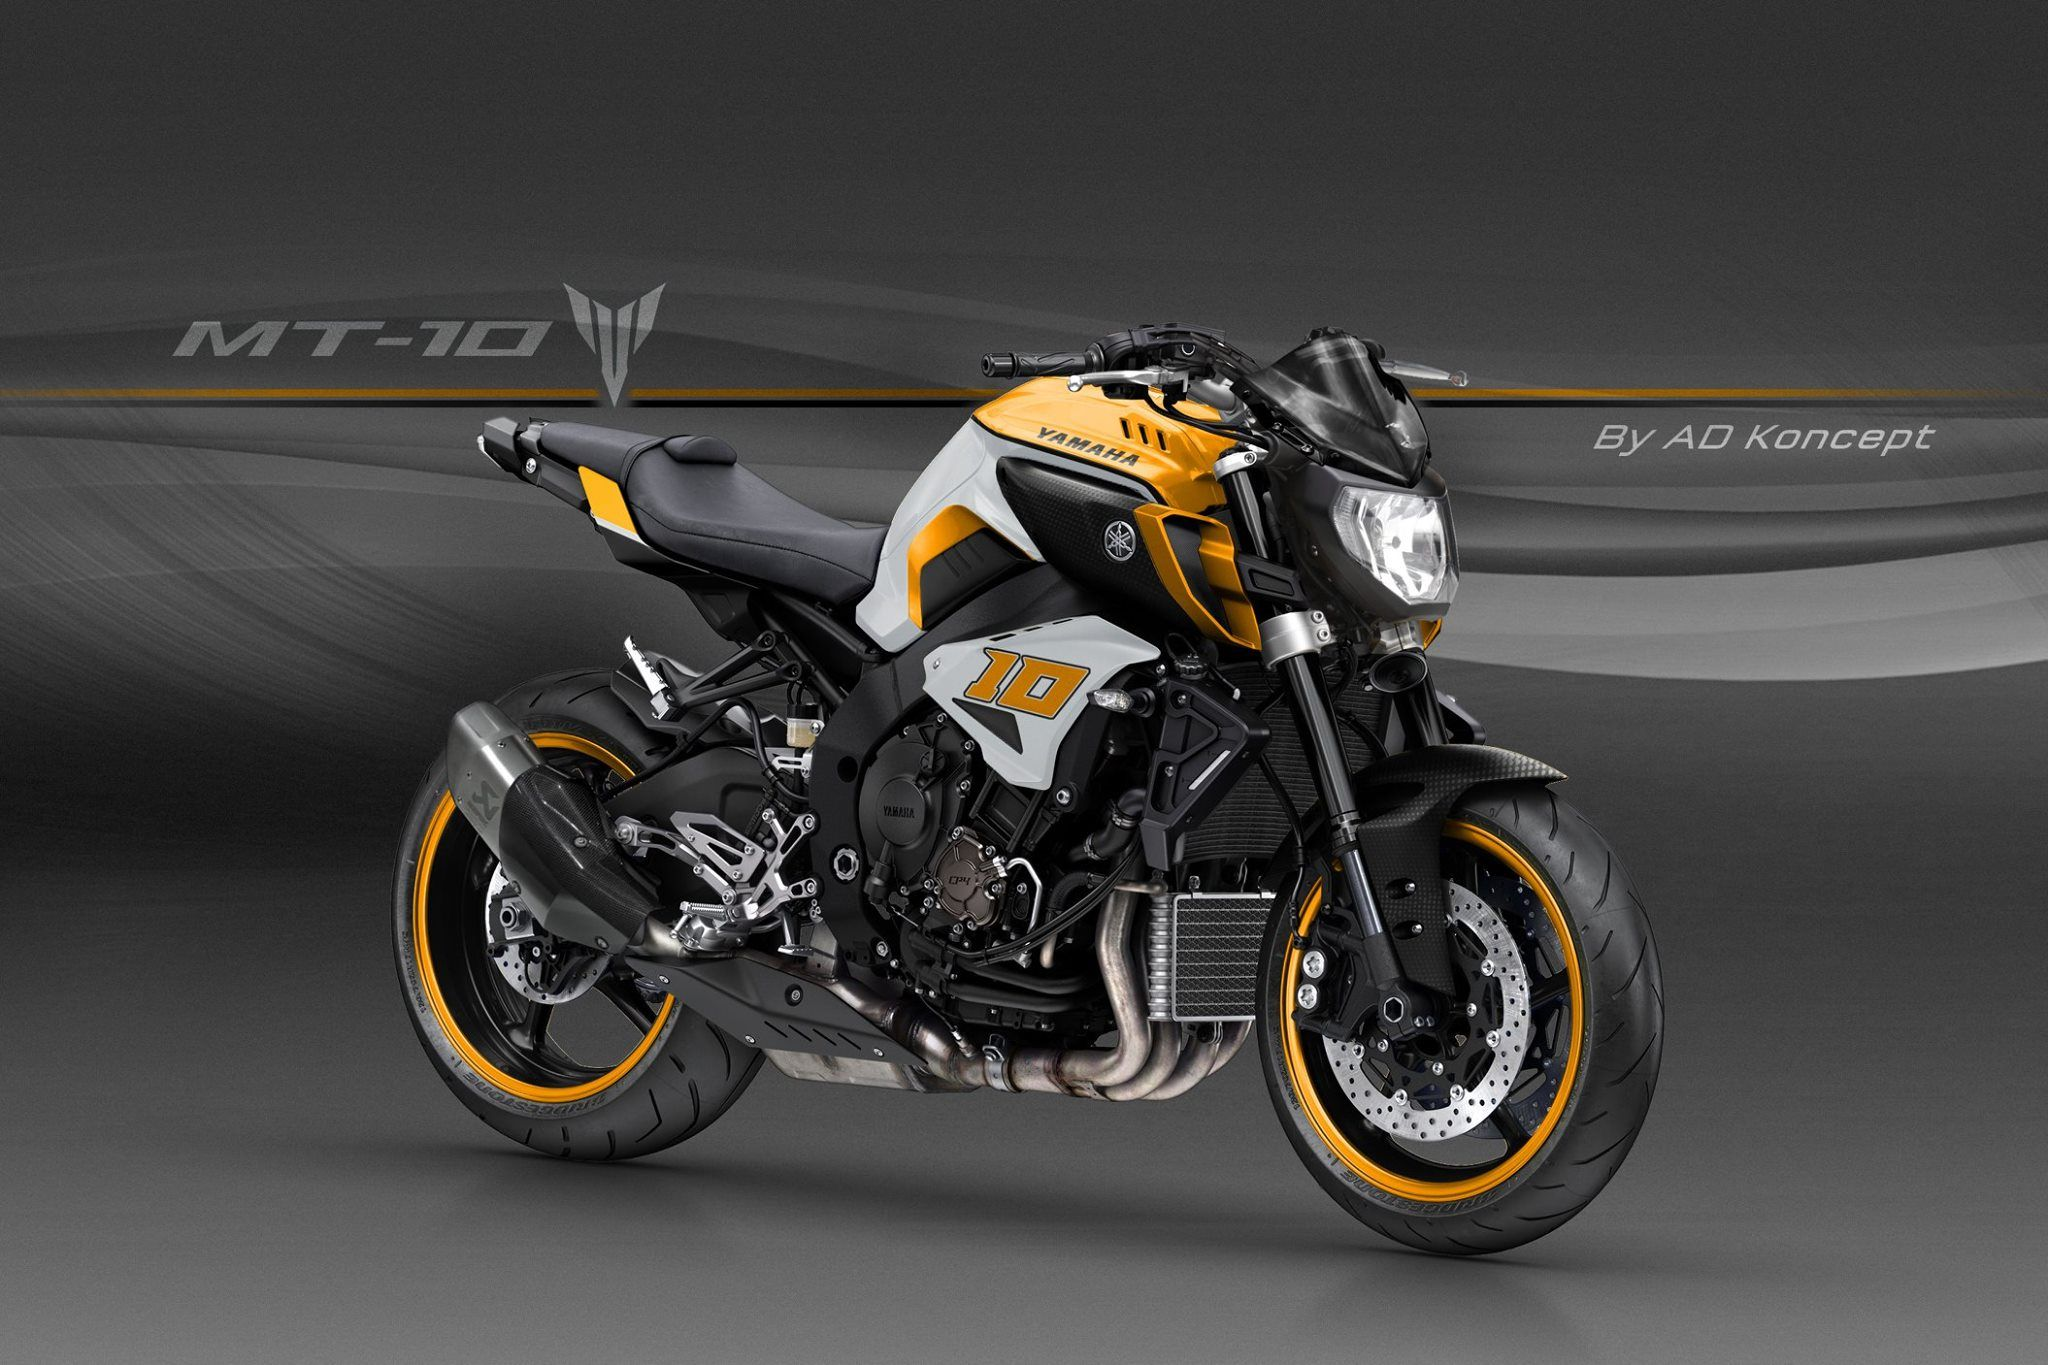 Yamaha mt 10 in valentino rossi livery and more from ad koncept 11